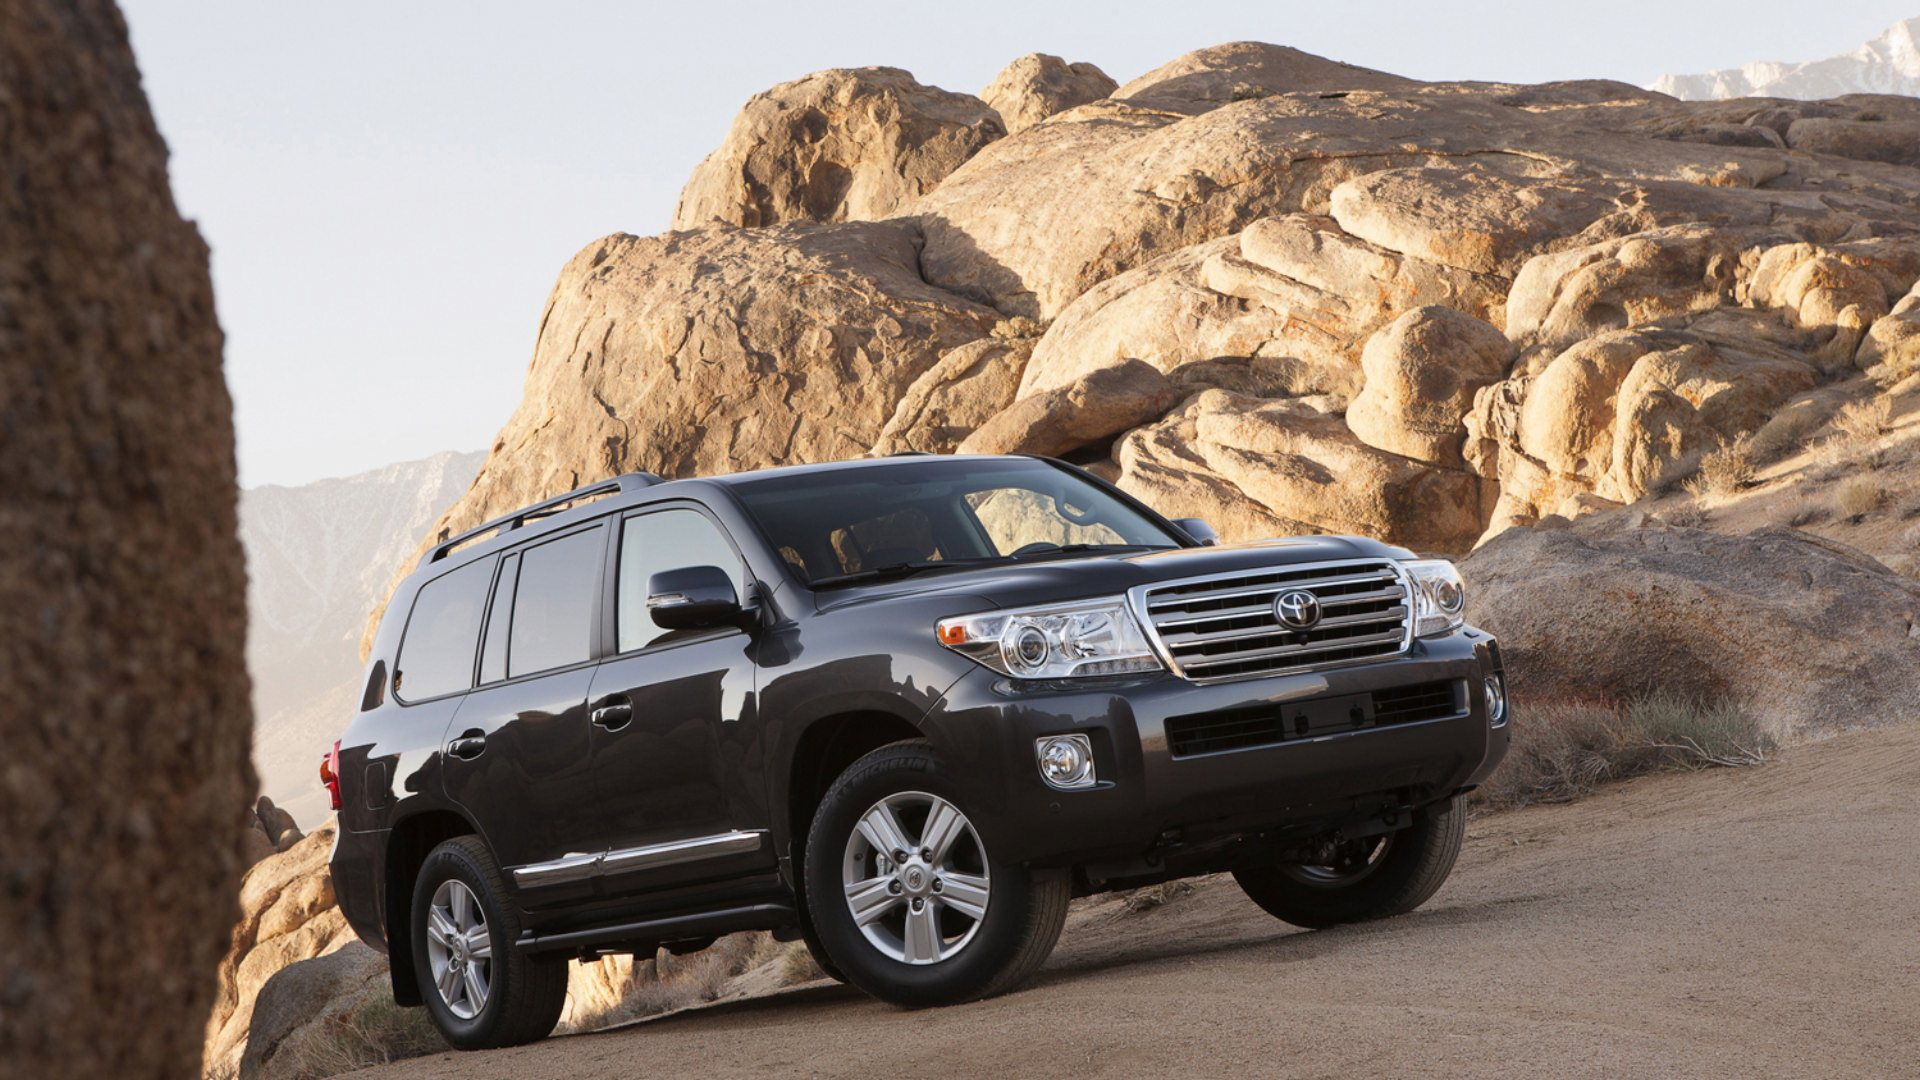 Wallpaper 2013 Toyota Land Cruiser Hd Wallpapers